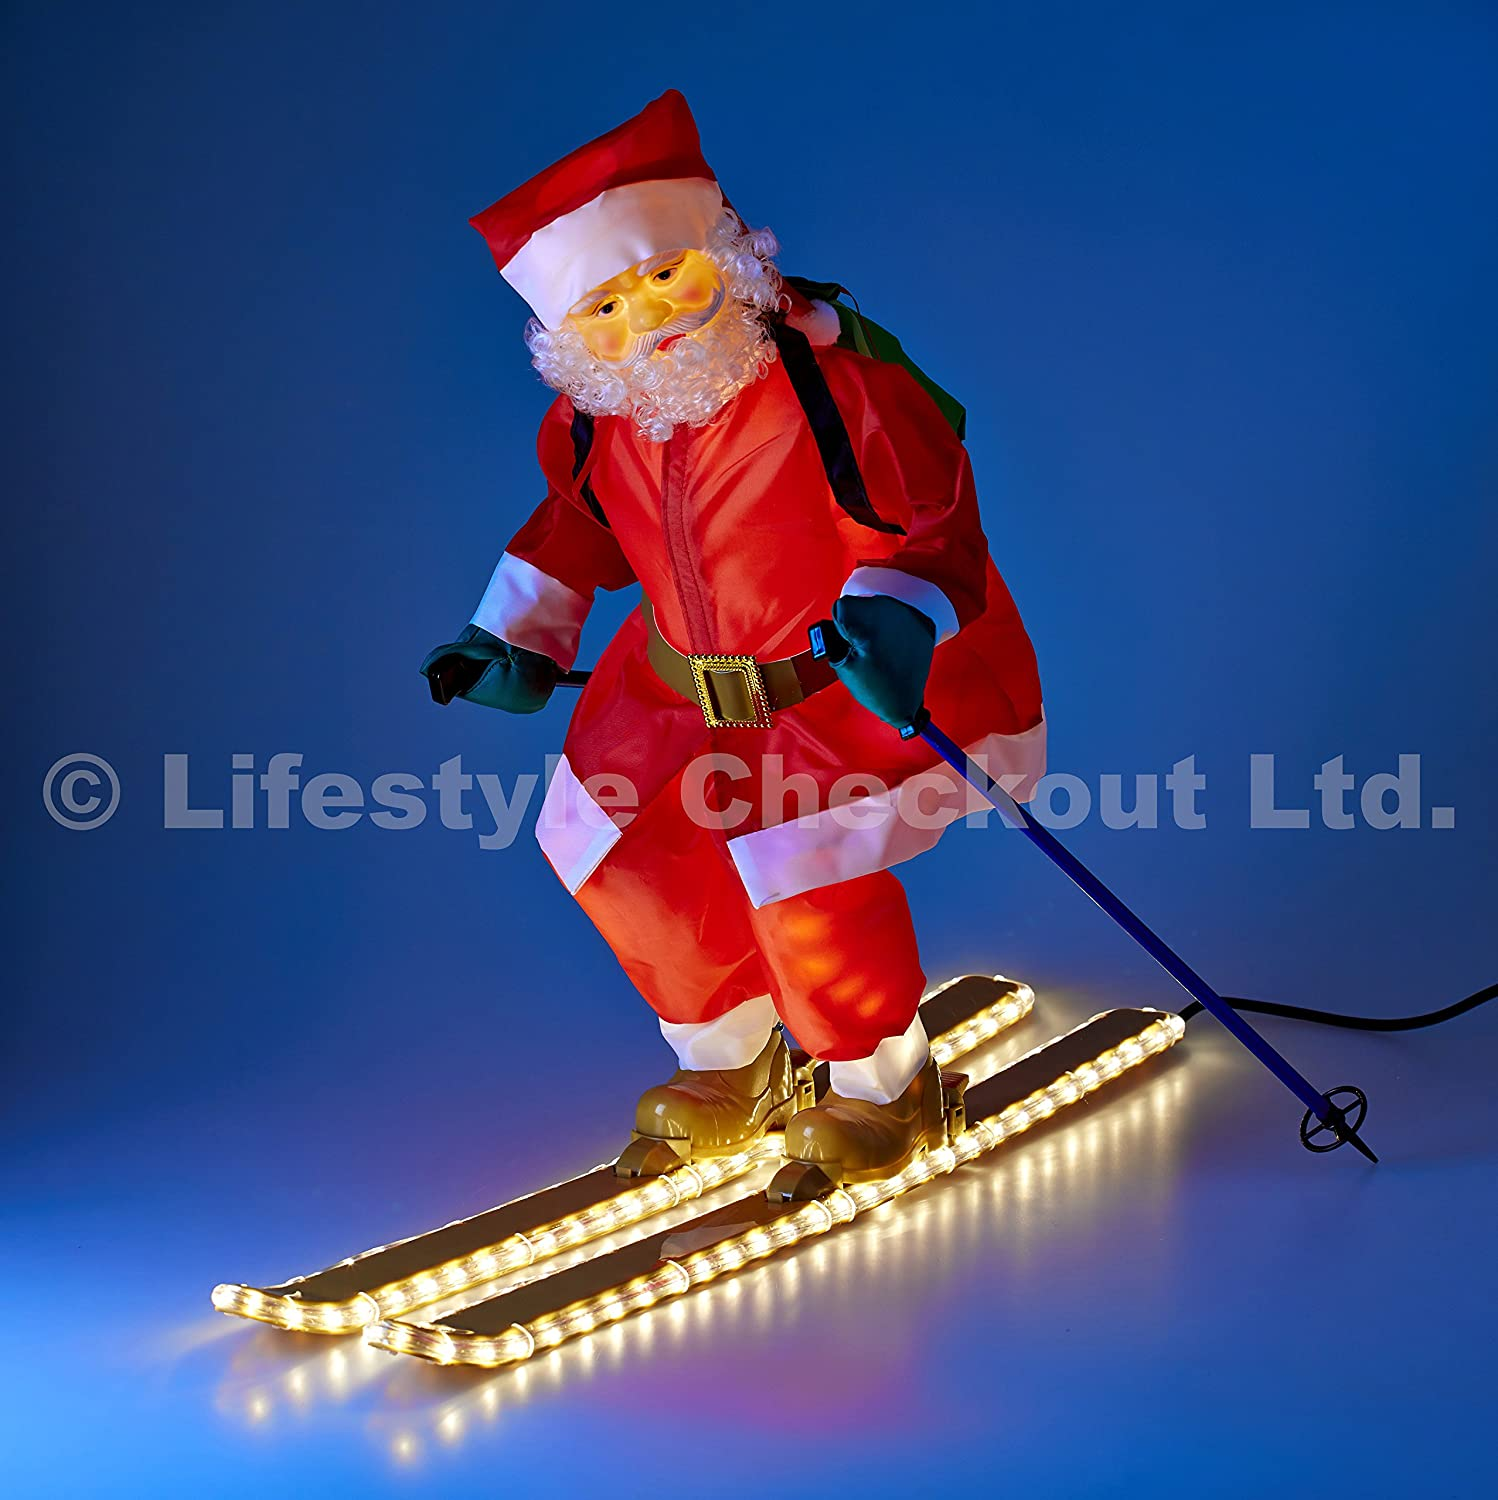 75cm Santa on Skis with LIGHT UP Rope and Body for Outdoor Christmas Home & Garden Decoration Lifestyle Checkout Ltd.